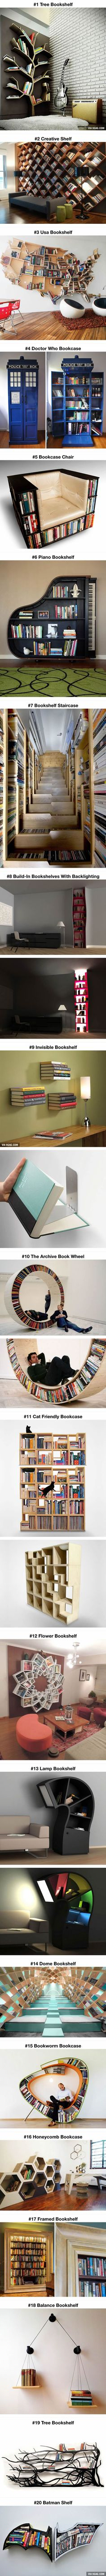 20 Most Creative Bookshelves Ever